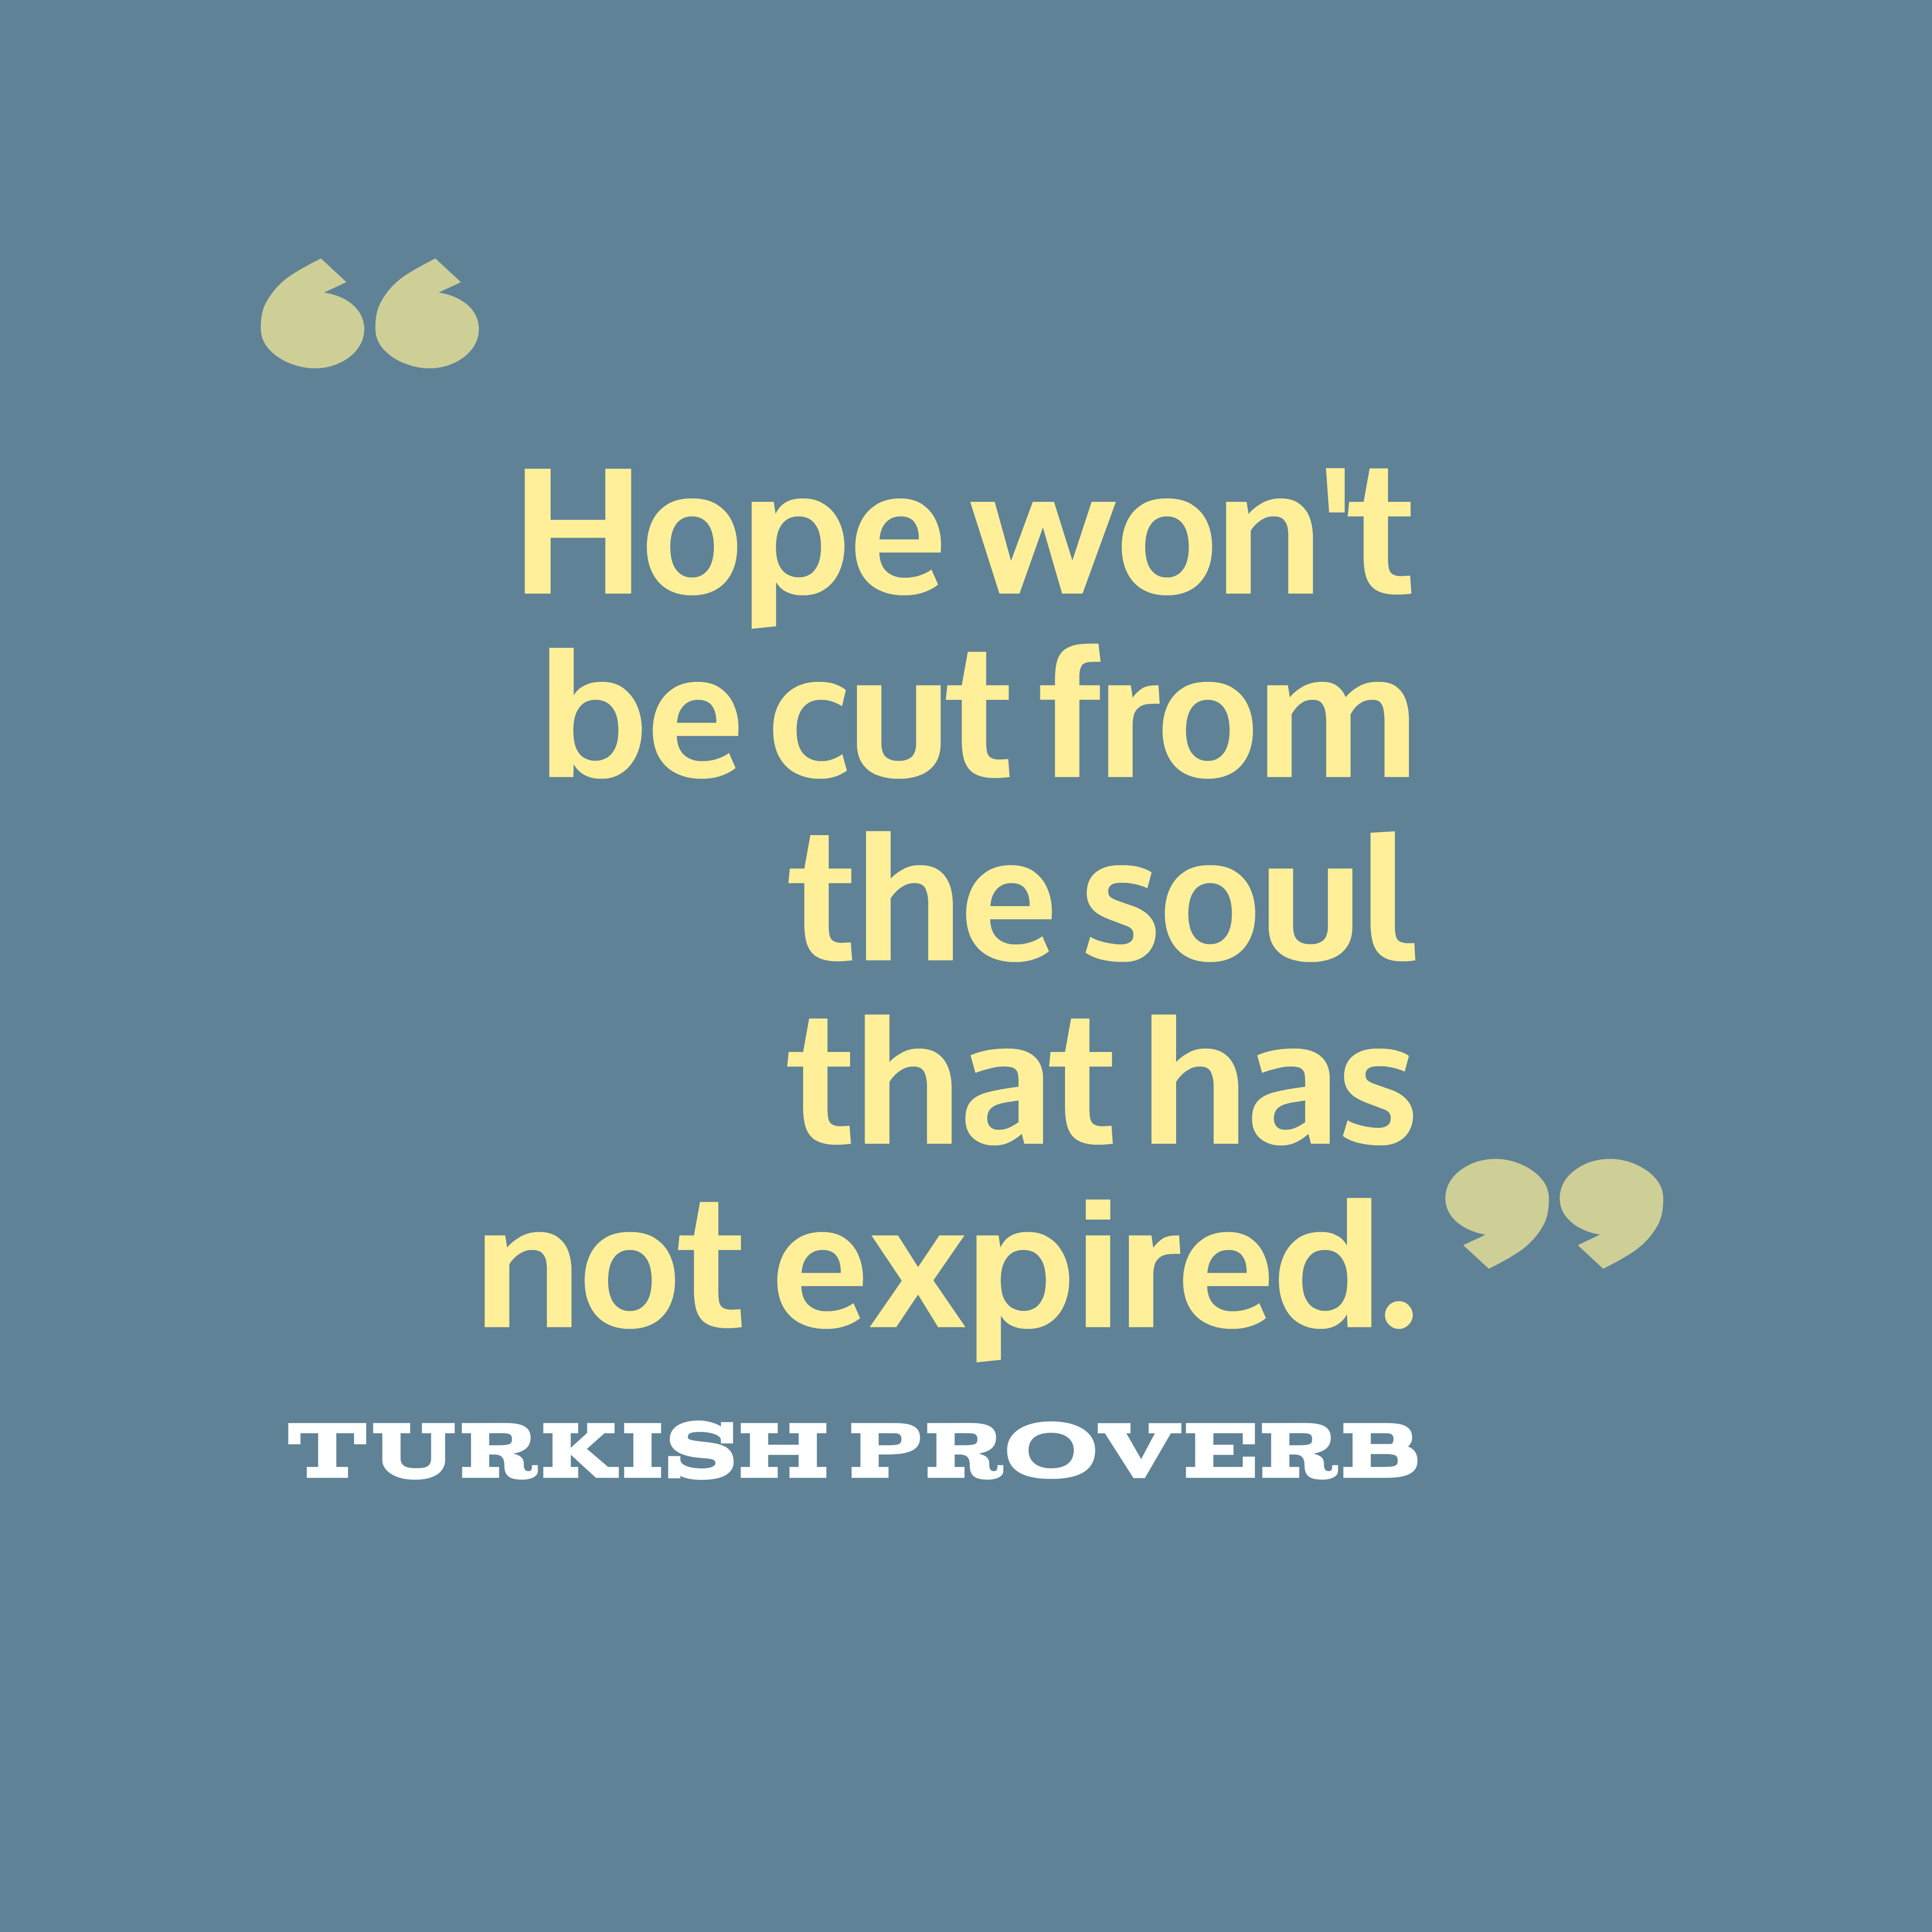 I Am Free Quotes Picture Turkish prover...